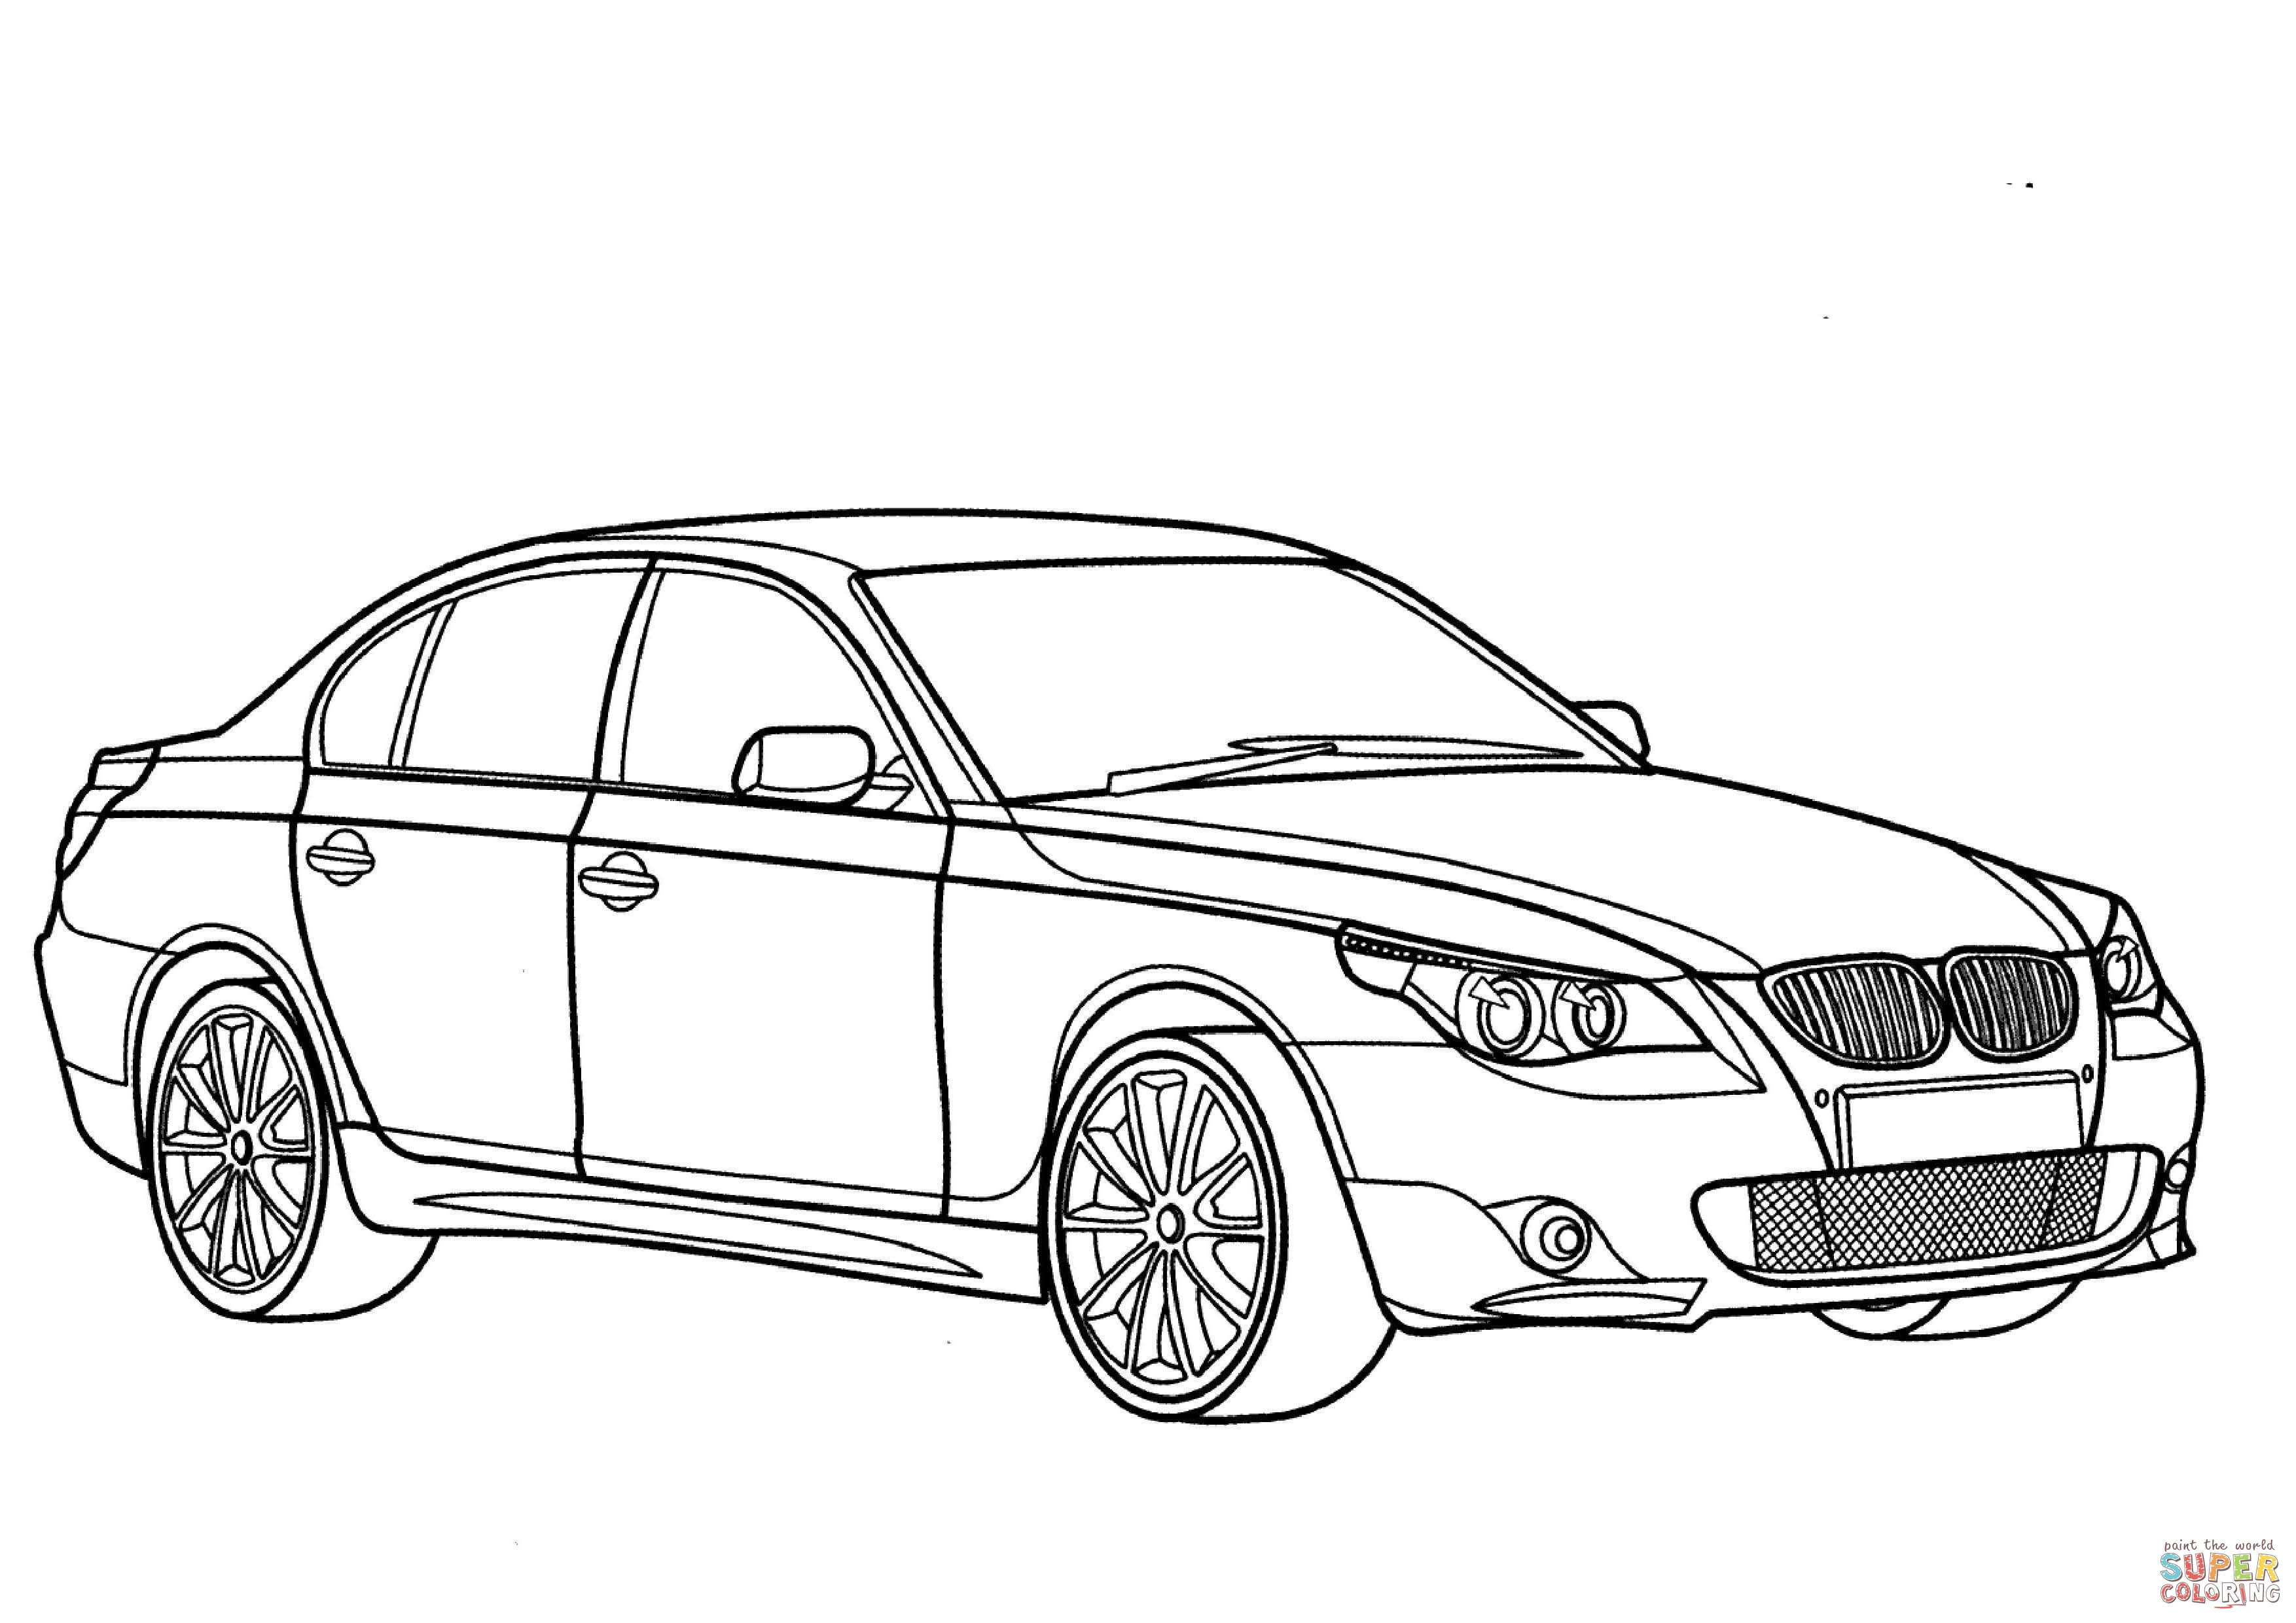 bmw m3 coloring pages bmw car m3 coloring pages best place to color bmw coloring pages m3